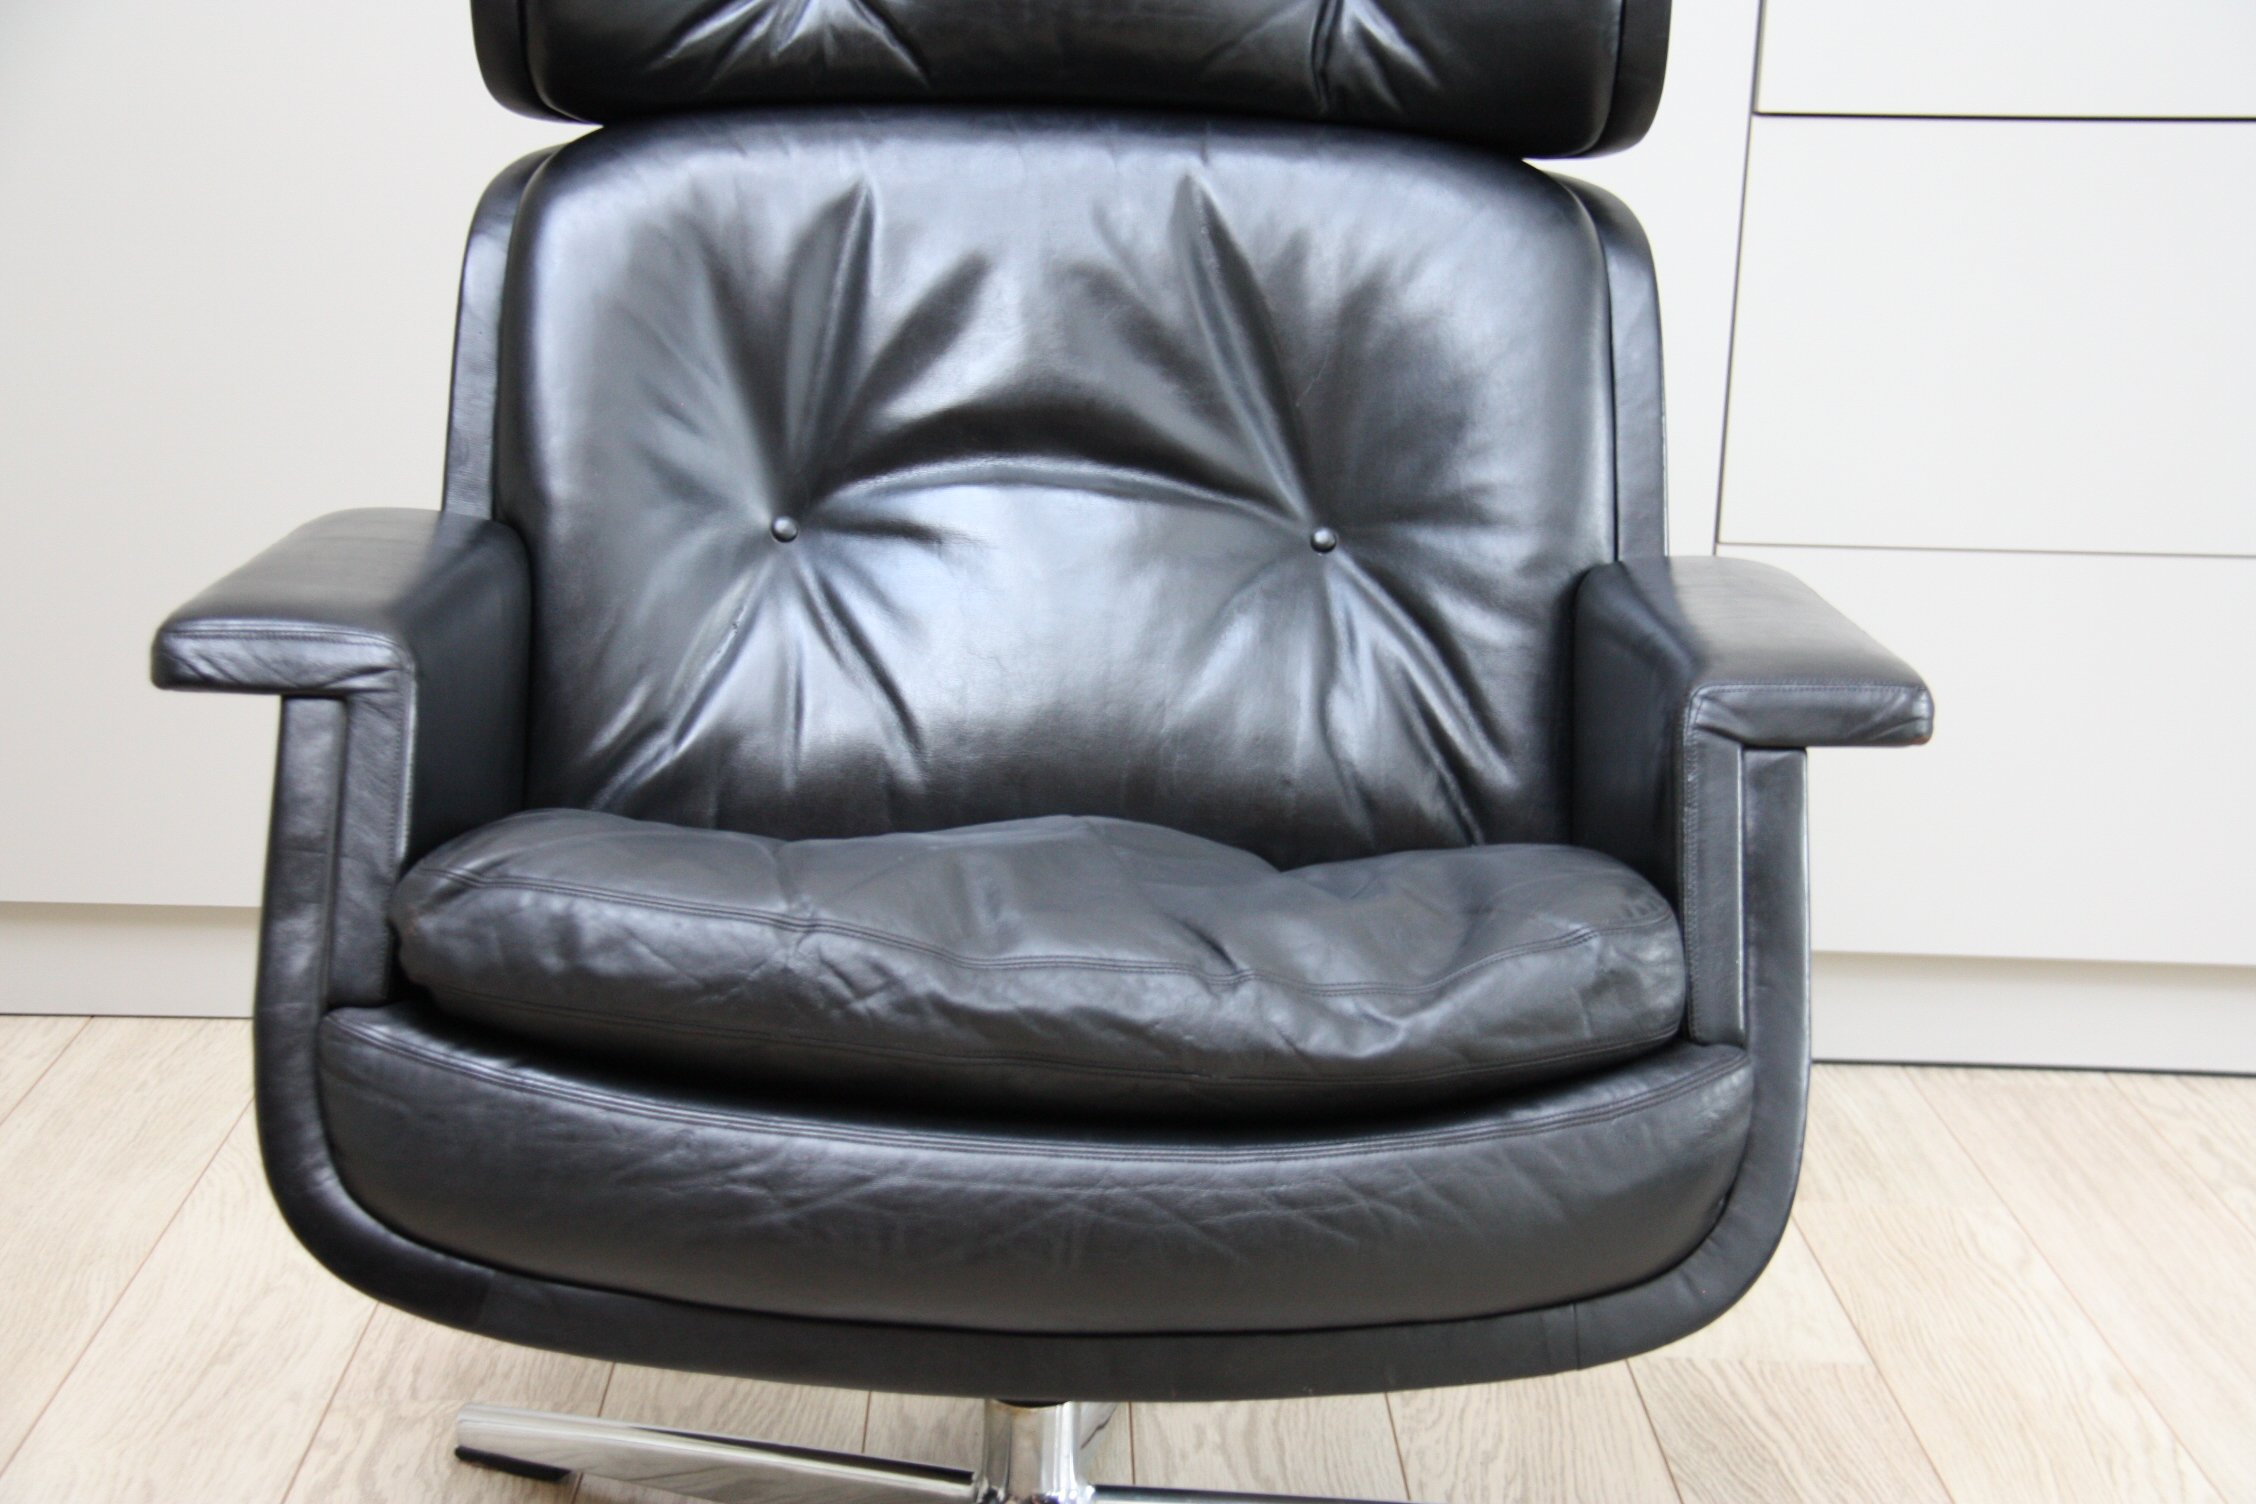 Tremendous Lounge Chair In Black Leather Eugen Schmidt Germany 1960S Gmtry Best Dining Table And Chair Ideas Images Gmtryco